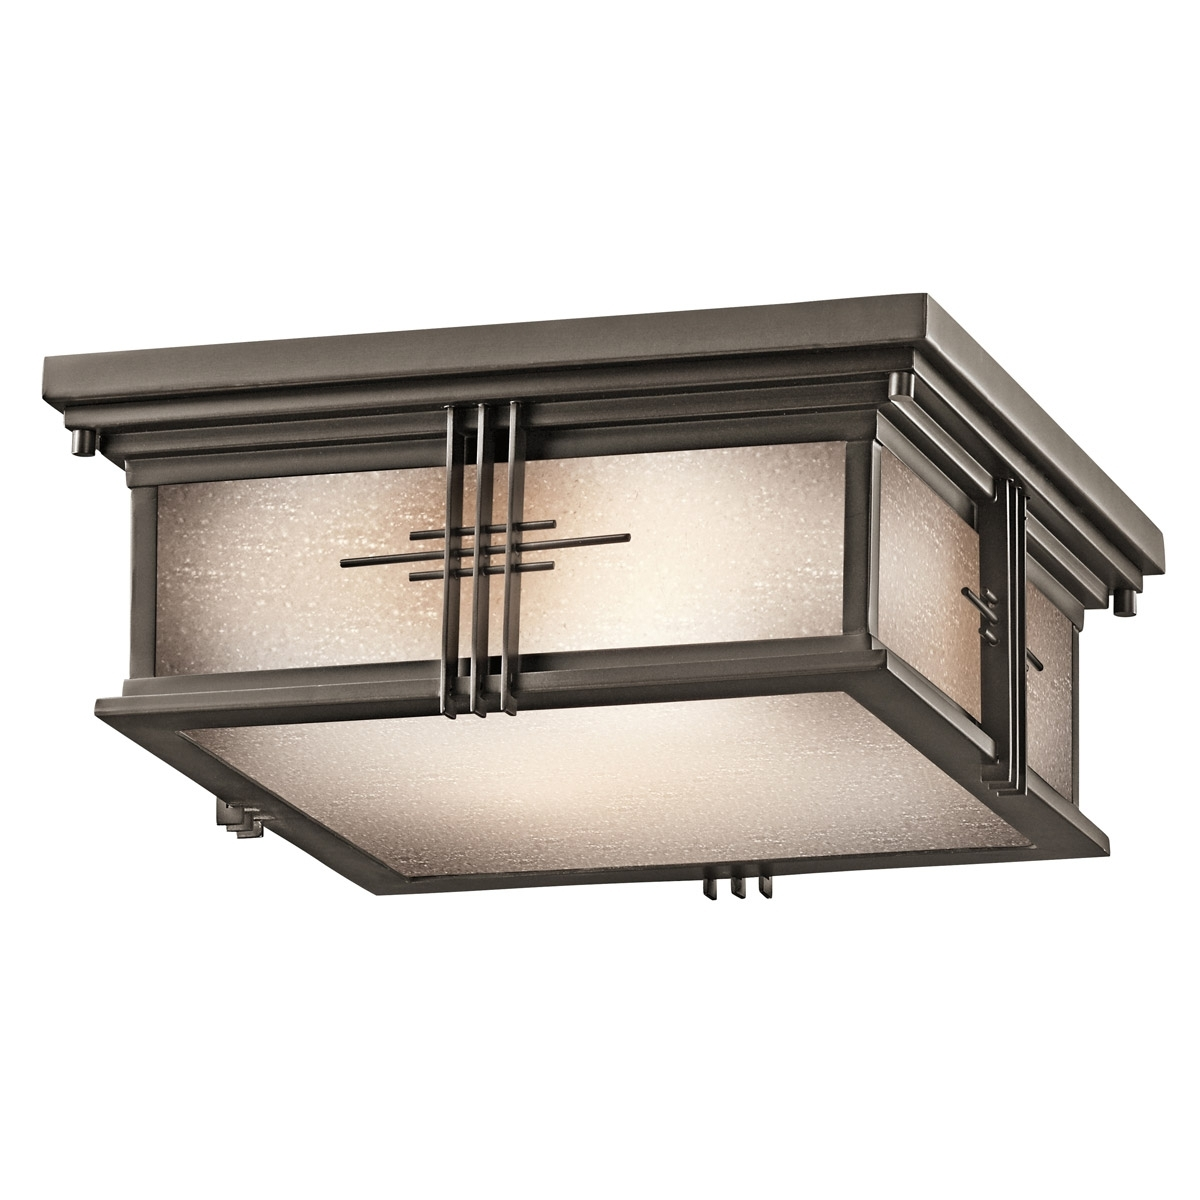 Decorative Outdoor Ceiling Lights In Most Up To Date 49164oz Portman Square Outdoor Flush Mount Ceiling Fixture (View 8 of 20)